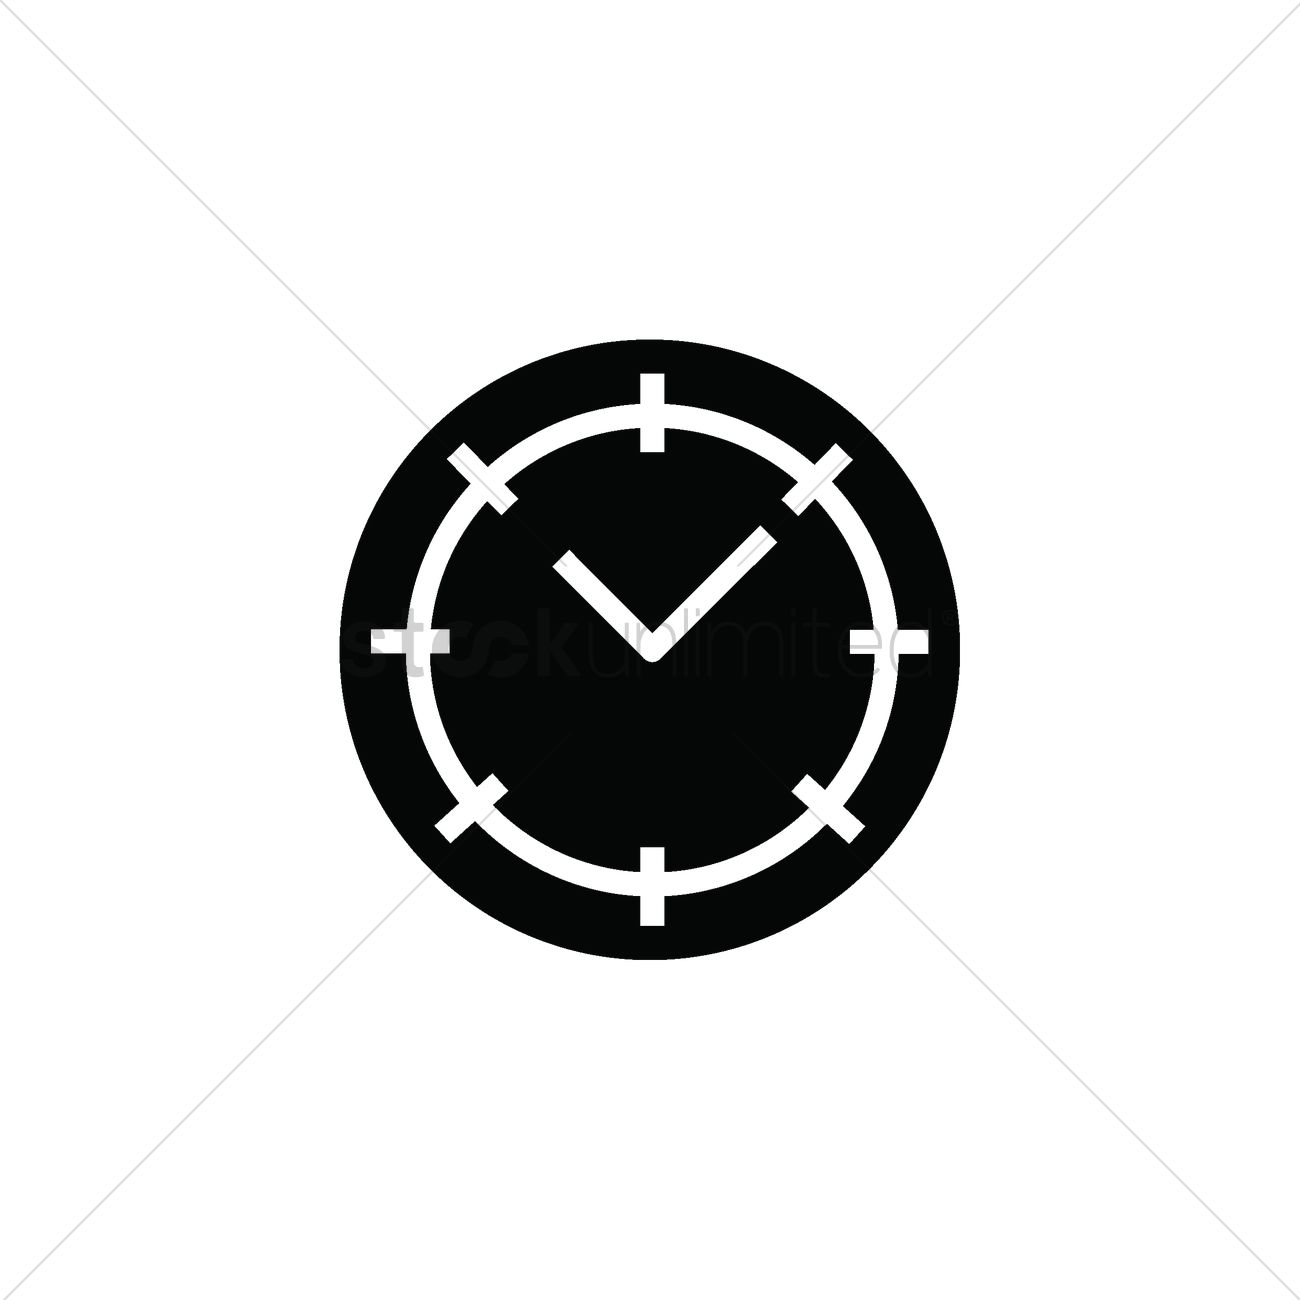 Clock icon Vector Image - 2001861 | StockUnlimited